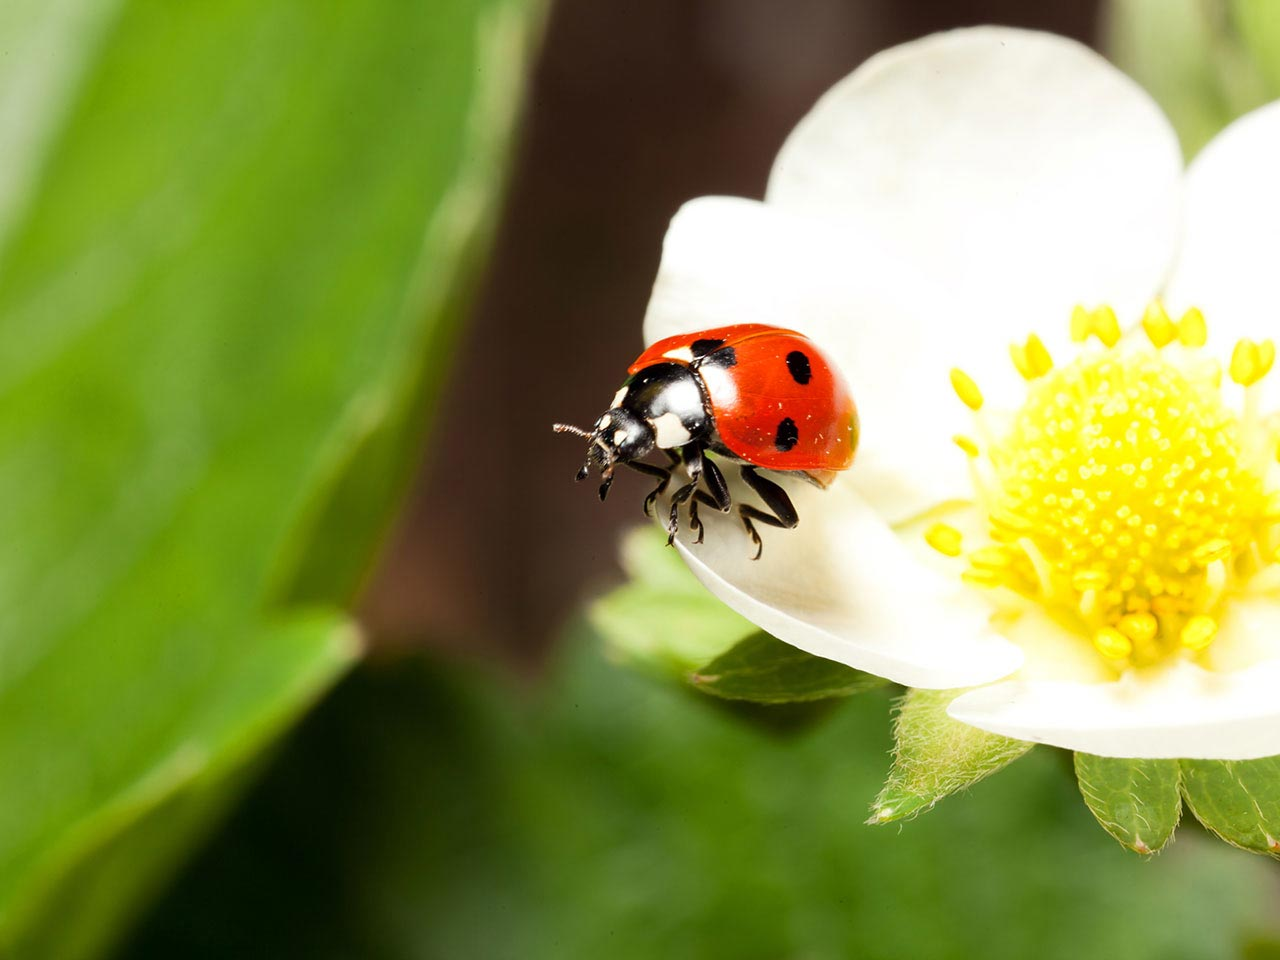 A ladybird, a predator of aphids